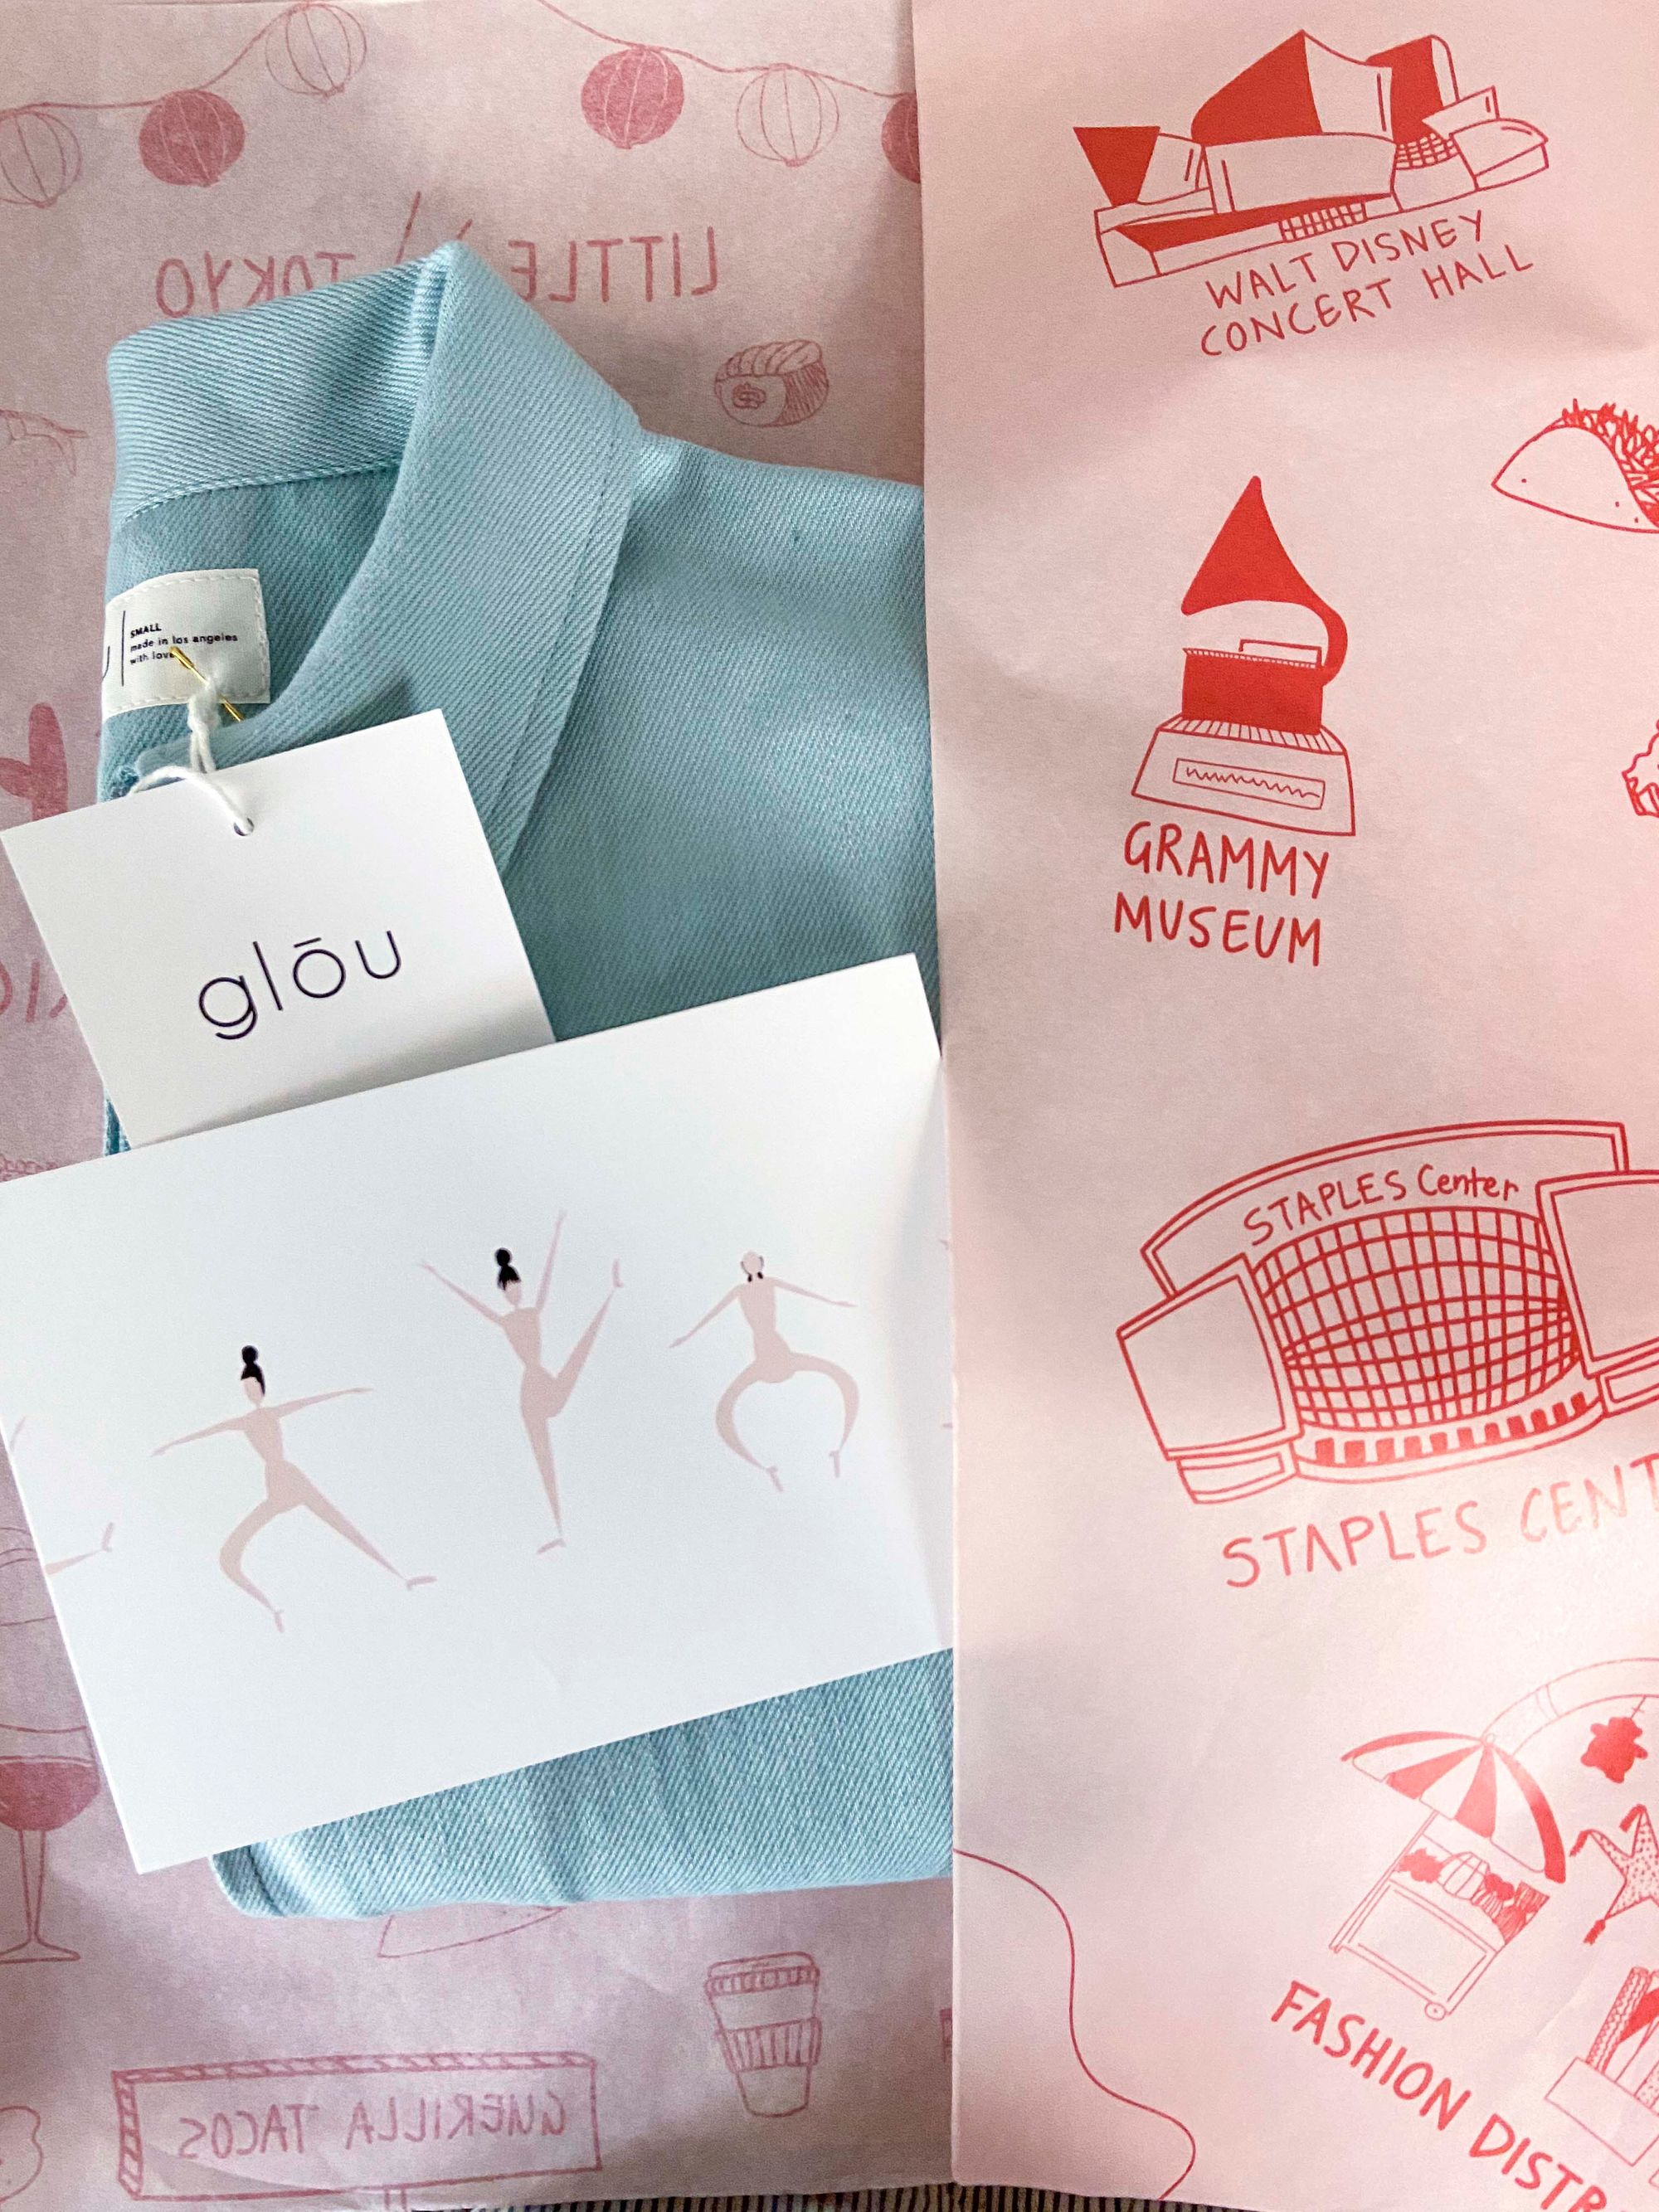 glōu: Quirky Sustainable Fashion Line for Creatives